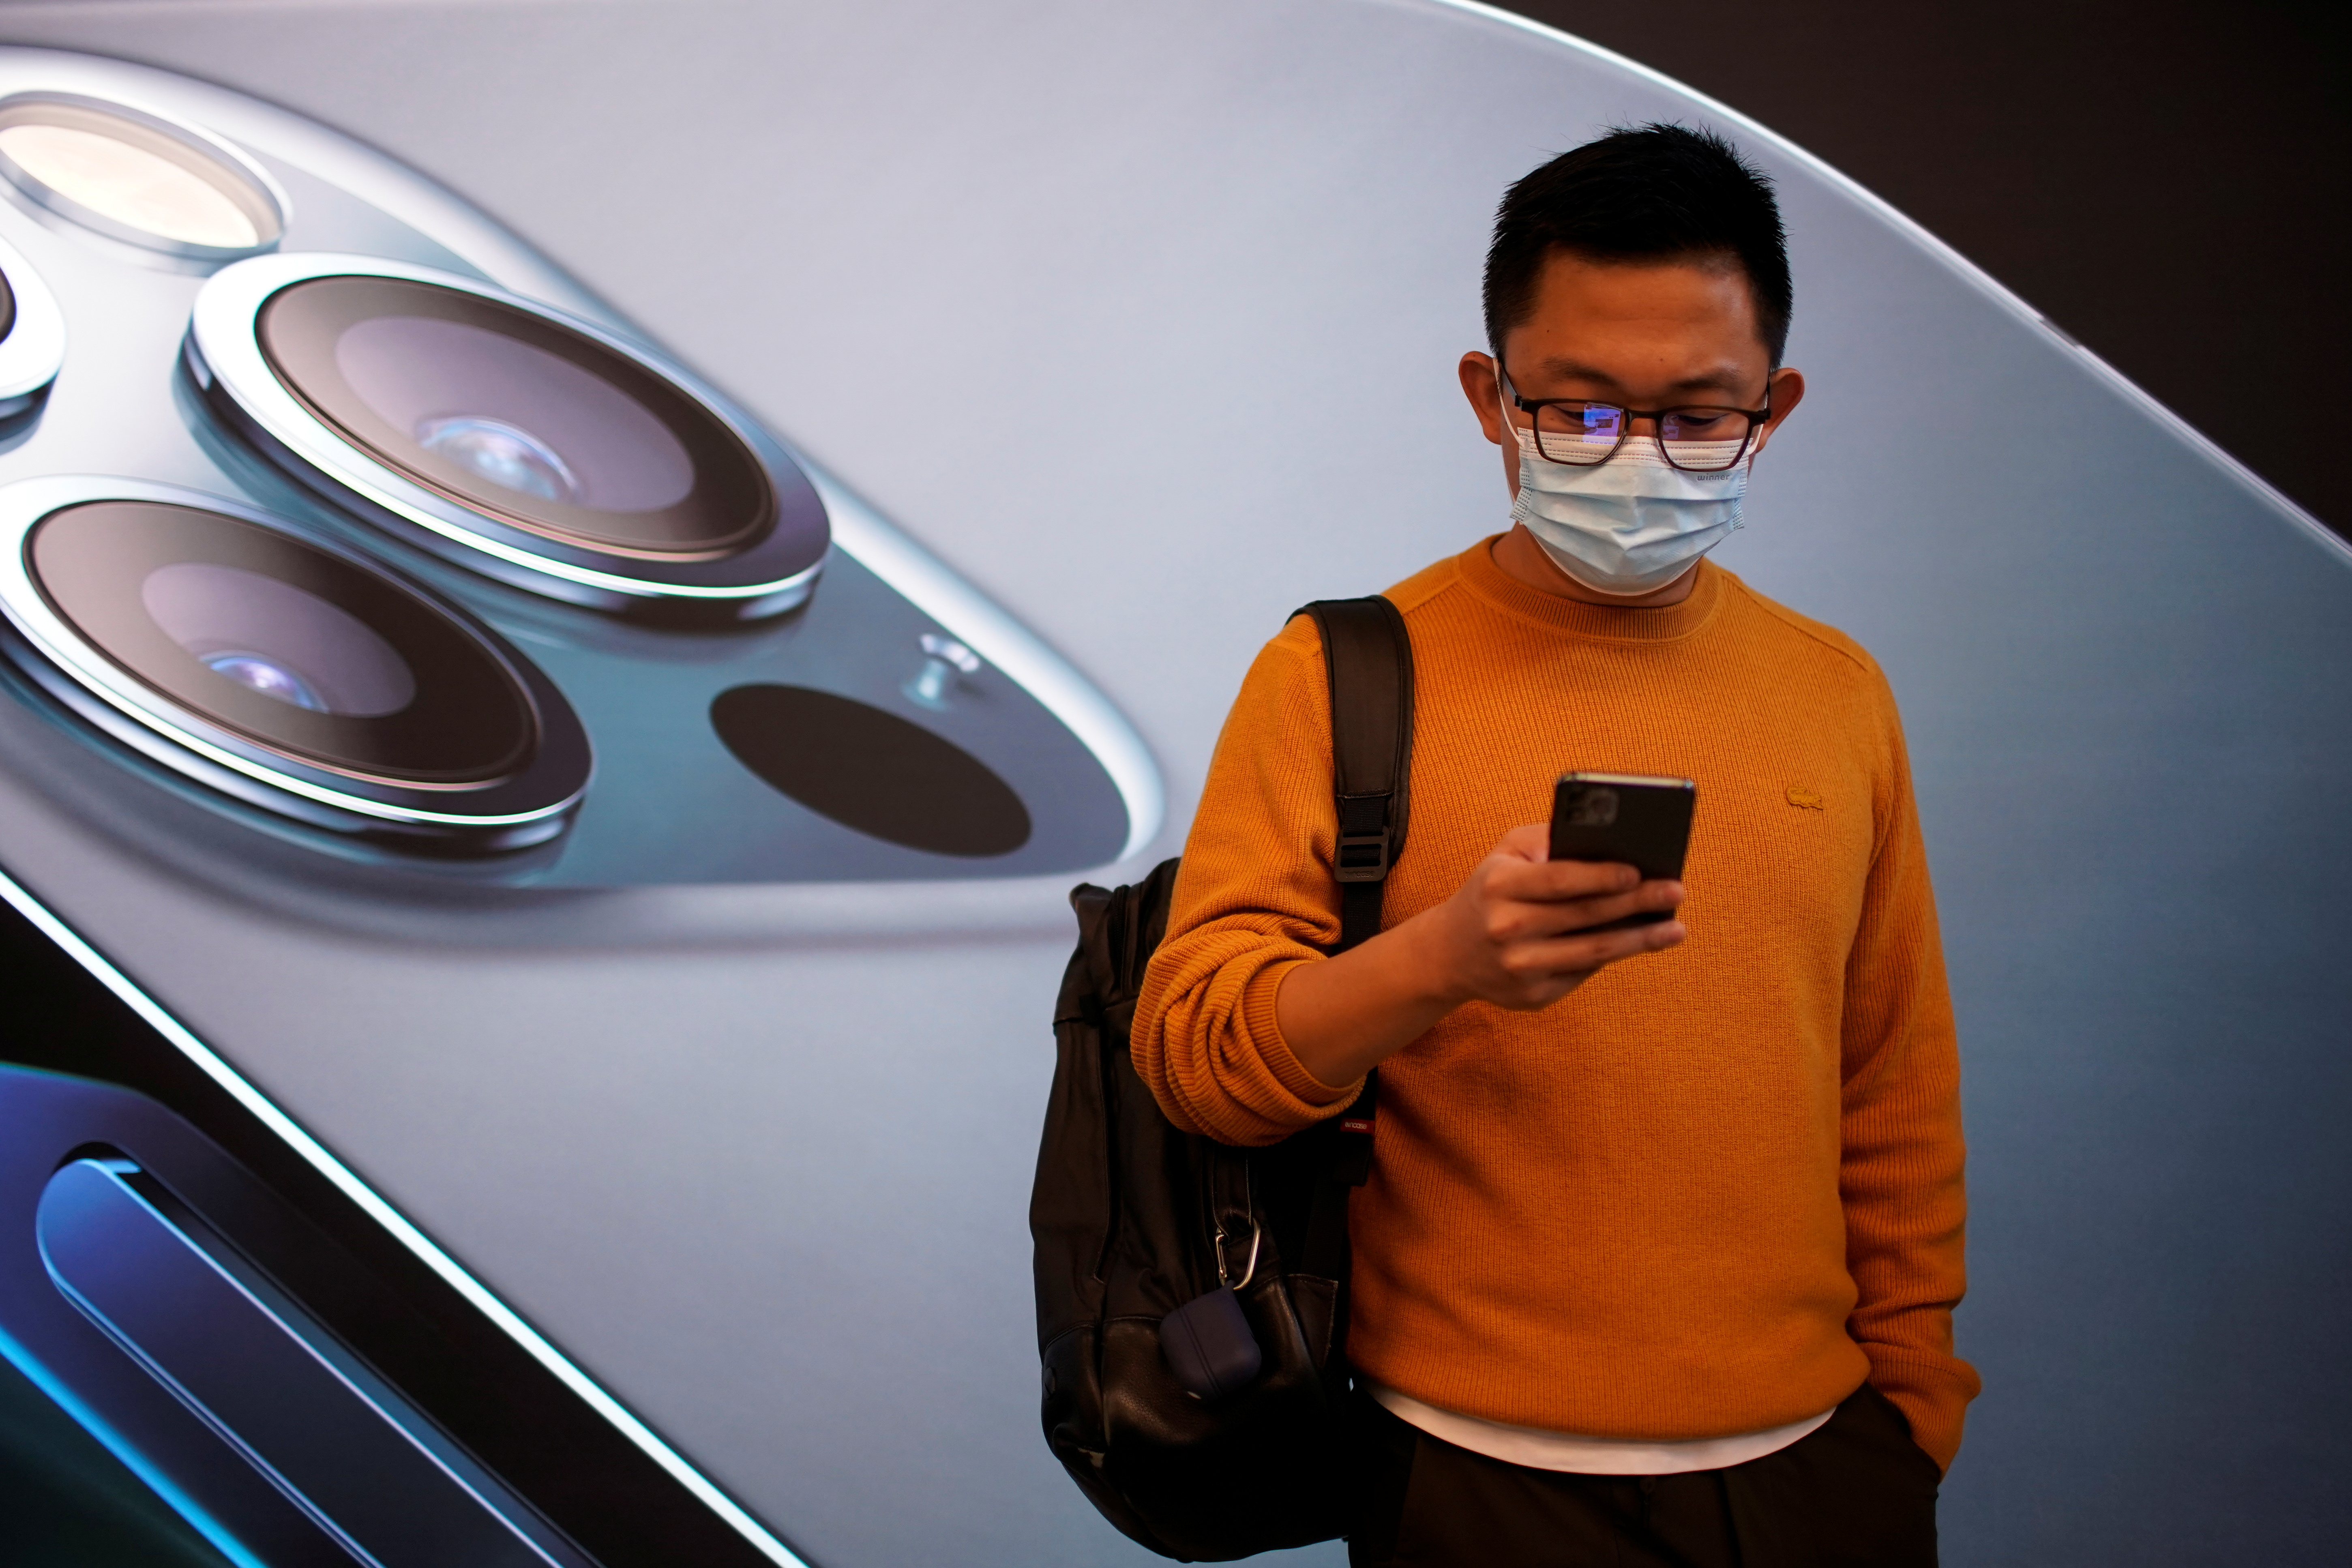 A man wears a face mask while waiting at an Apple Store before Apple's 5G new iPhone 12 go on sale, as the coronavirus disease (COVID-19) outbreak continues in Shanghai China October 23, 2020. REUTERS/Aly Song